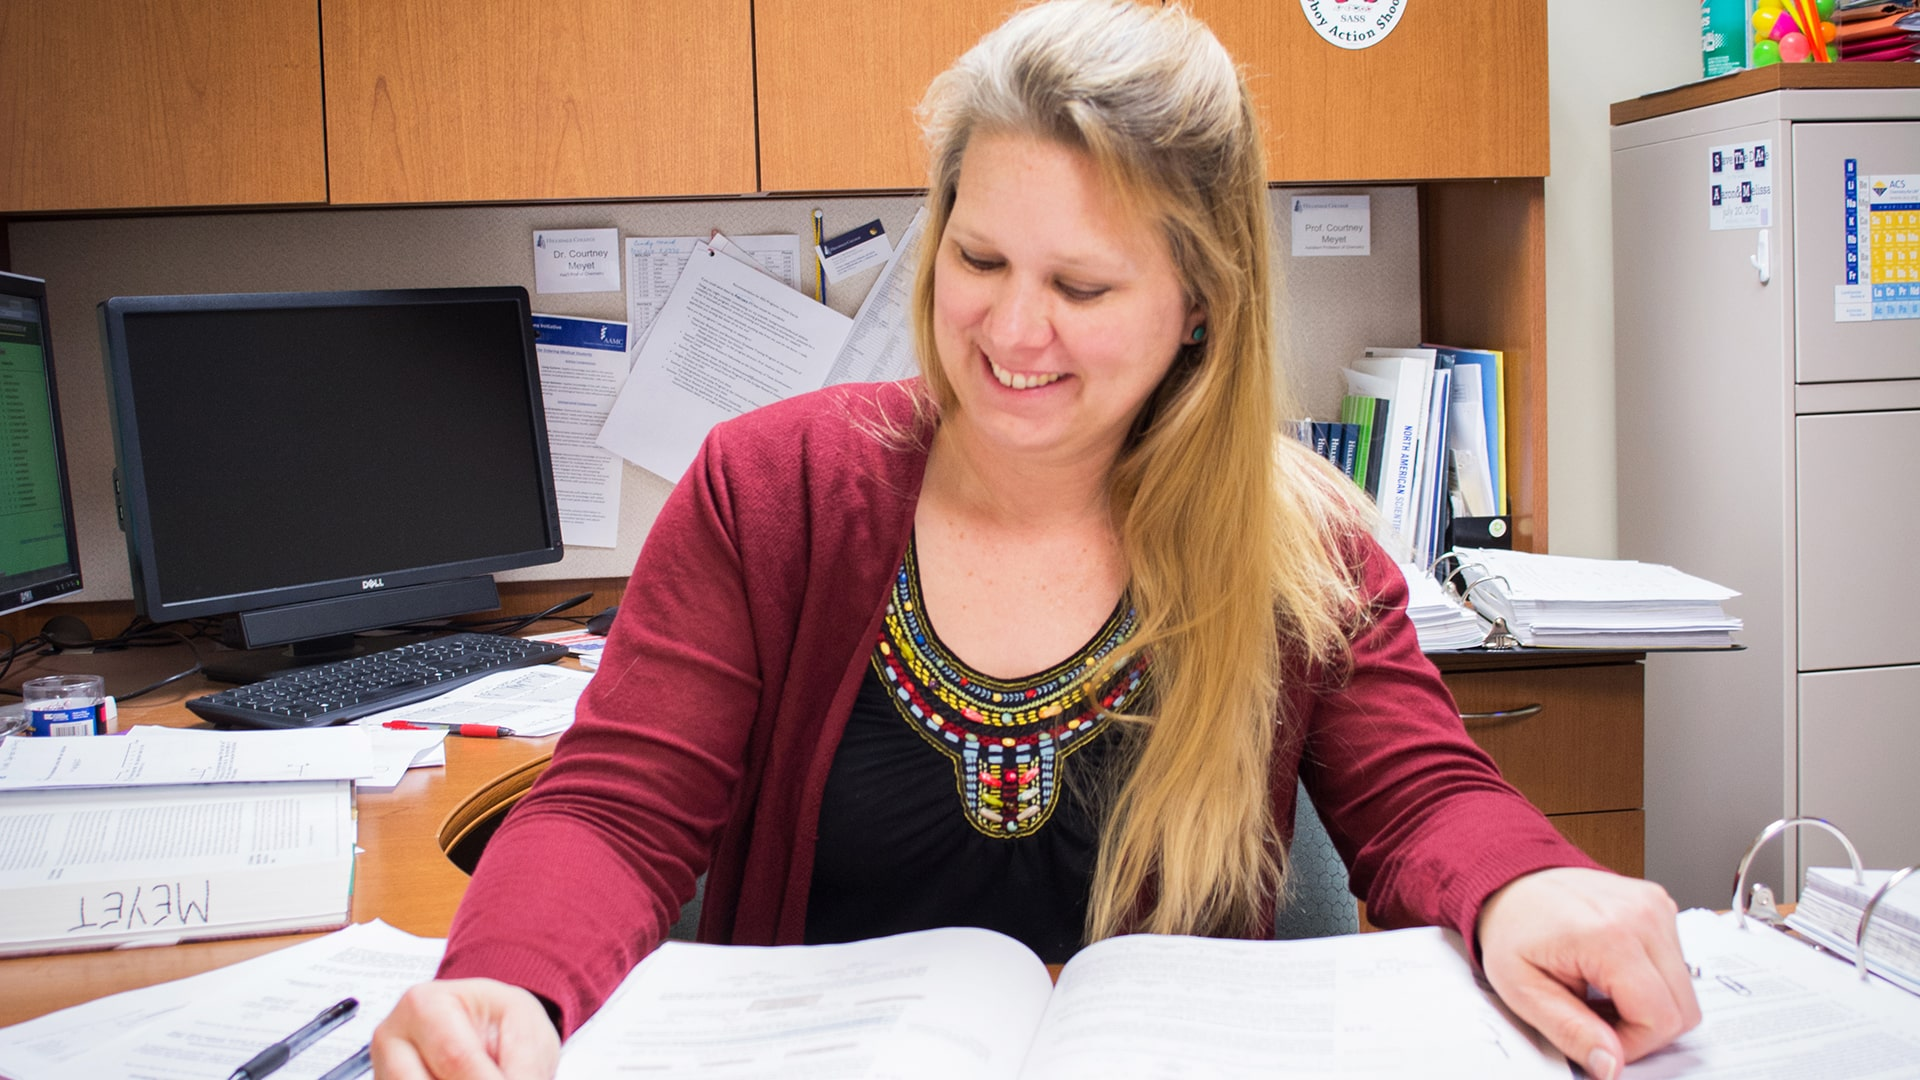 Dr. Courtney Meyet examines student research papers in her office